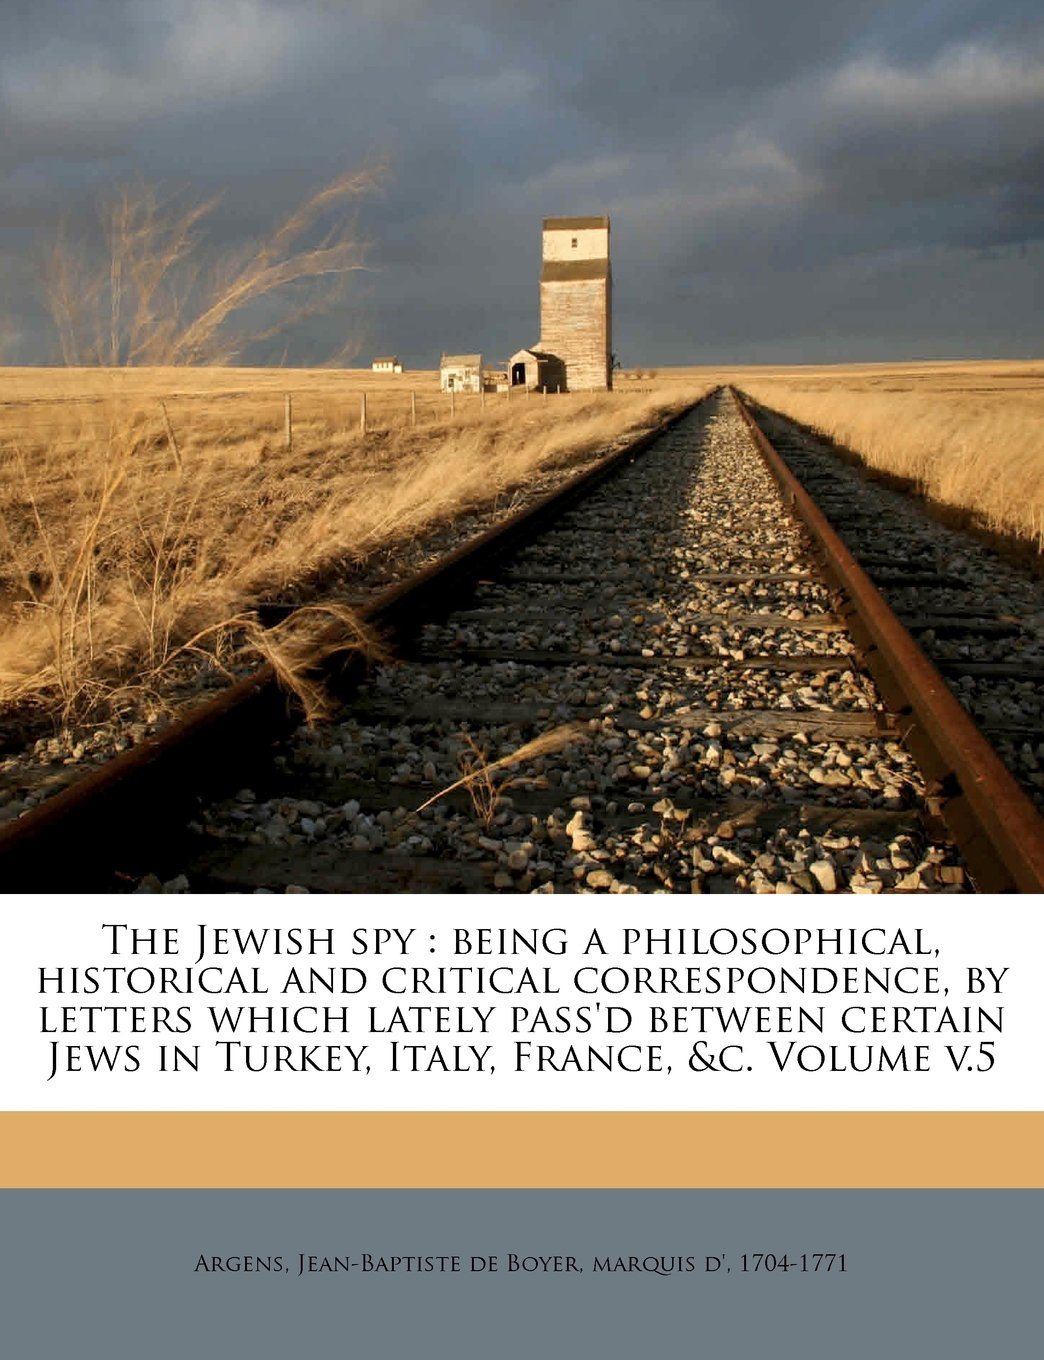 Download The Jewish spy: being a philosophical, historical and critical correspondence, by letters which lately pass'd between certain Jews in Turkey, Italy, France, &c. Volume v.5 PDF